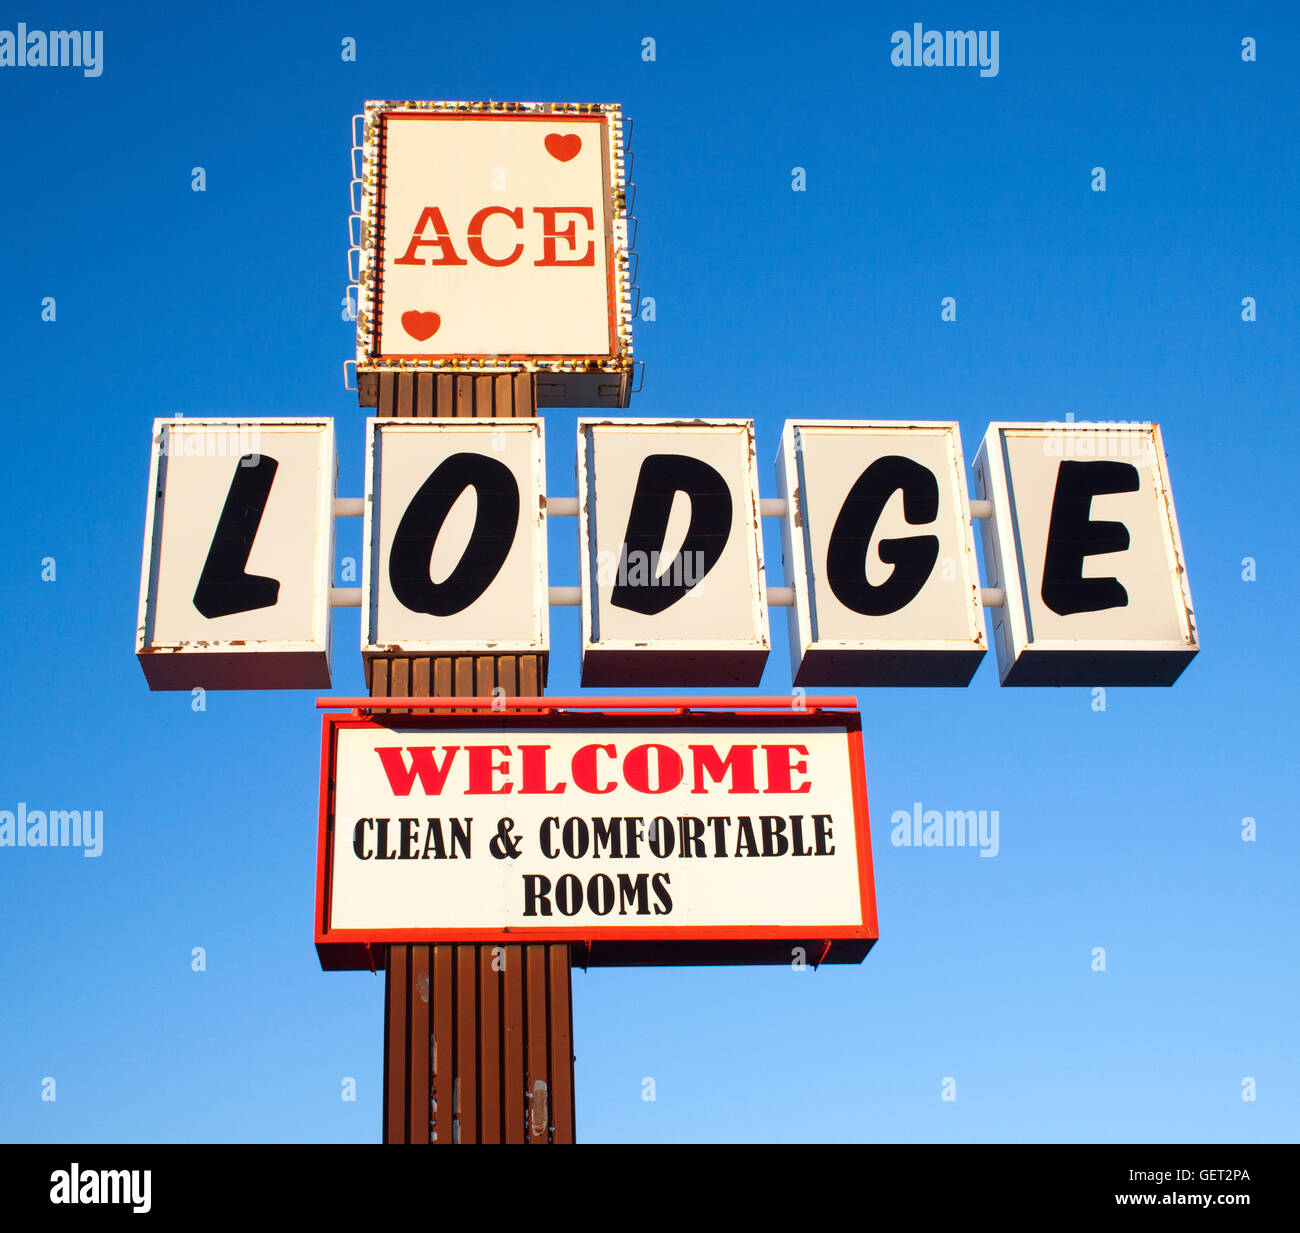 Ace Lodge motel sign in Truth or Consequences New Mexico - Stock Image